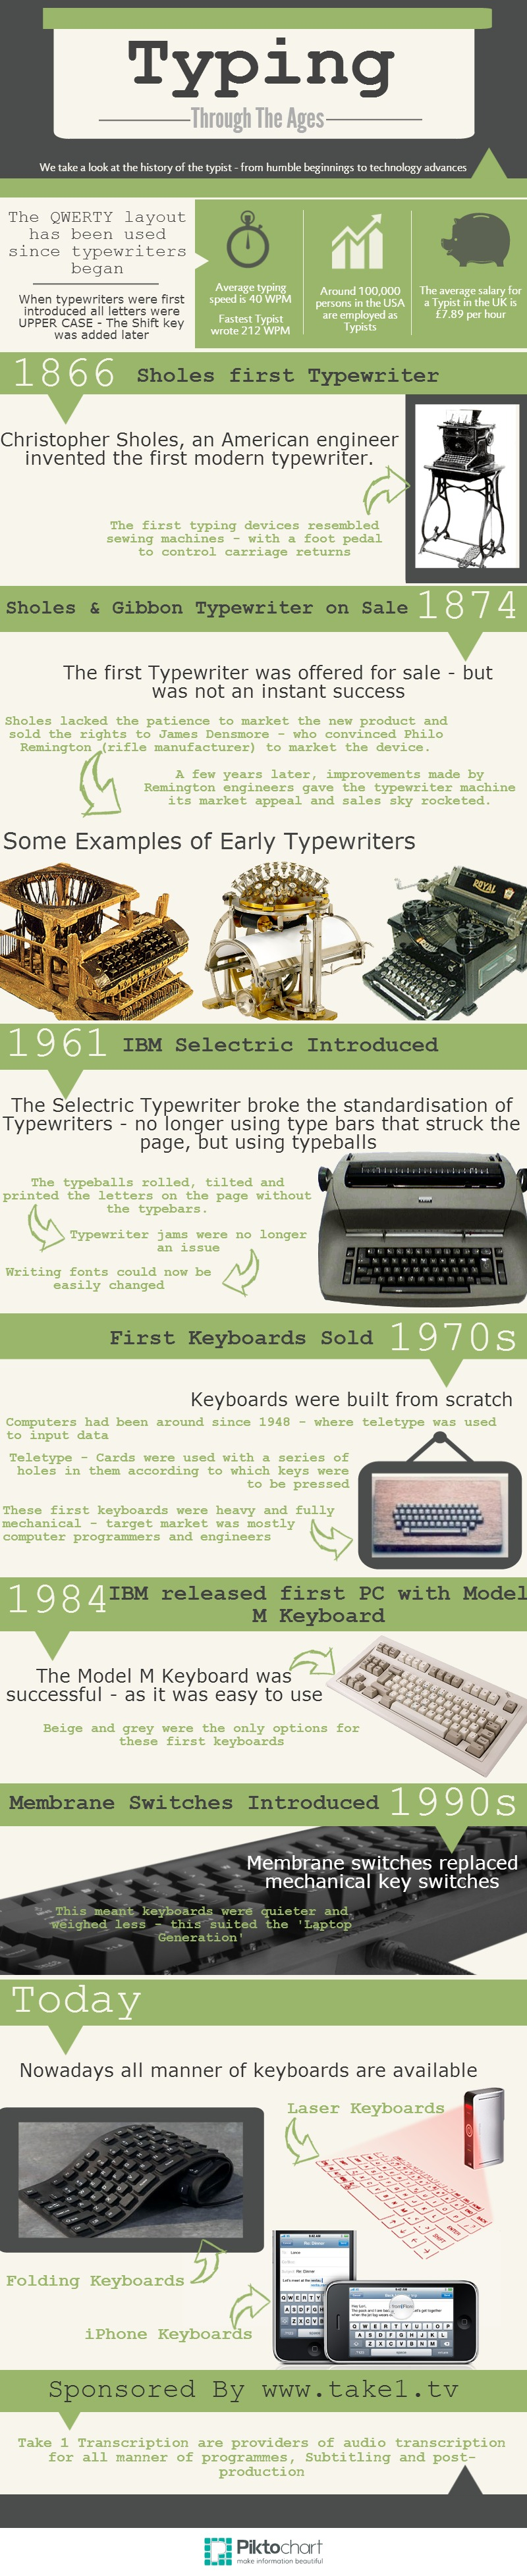 Typing Through the Ages